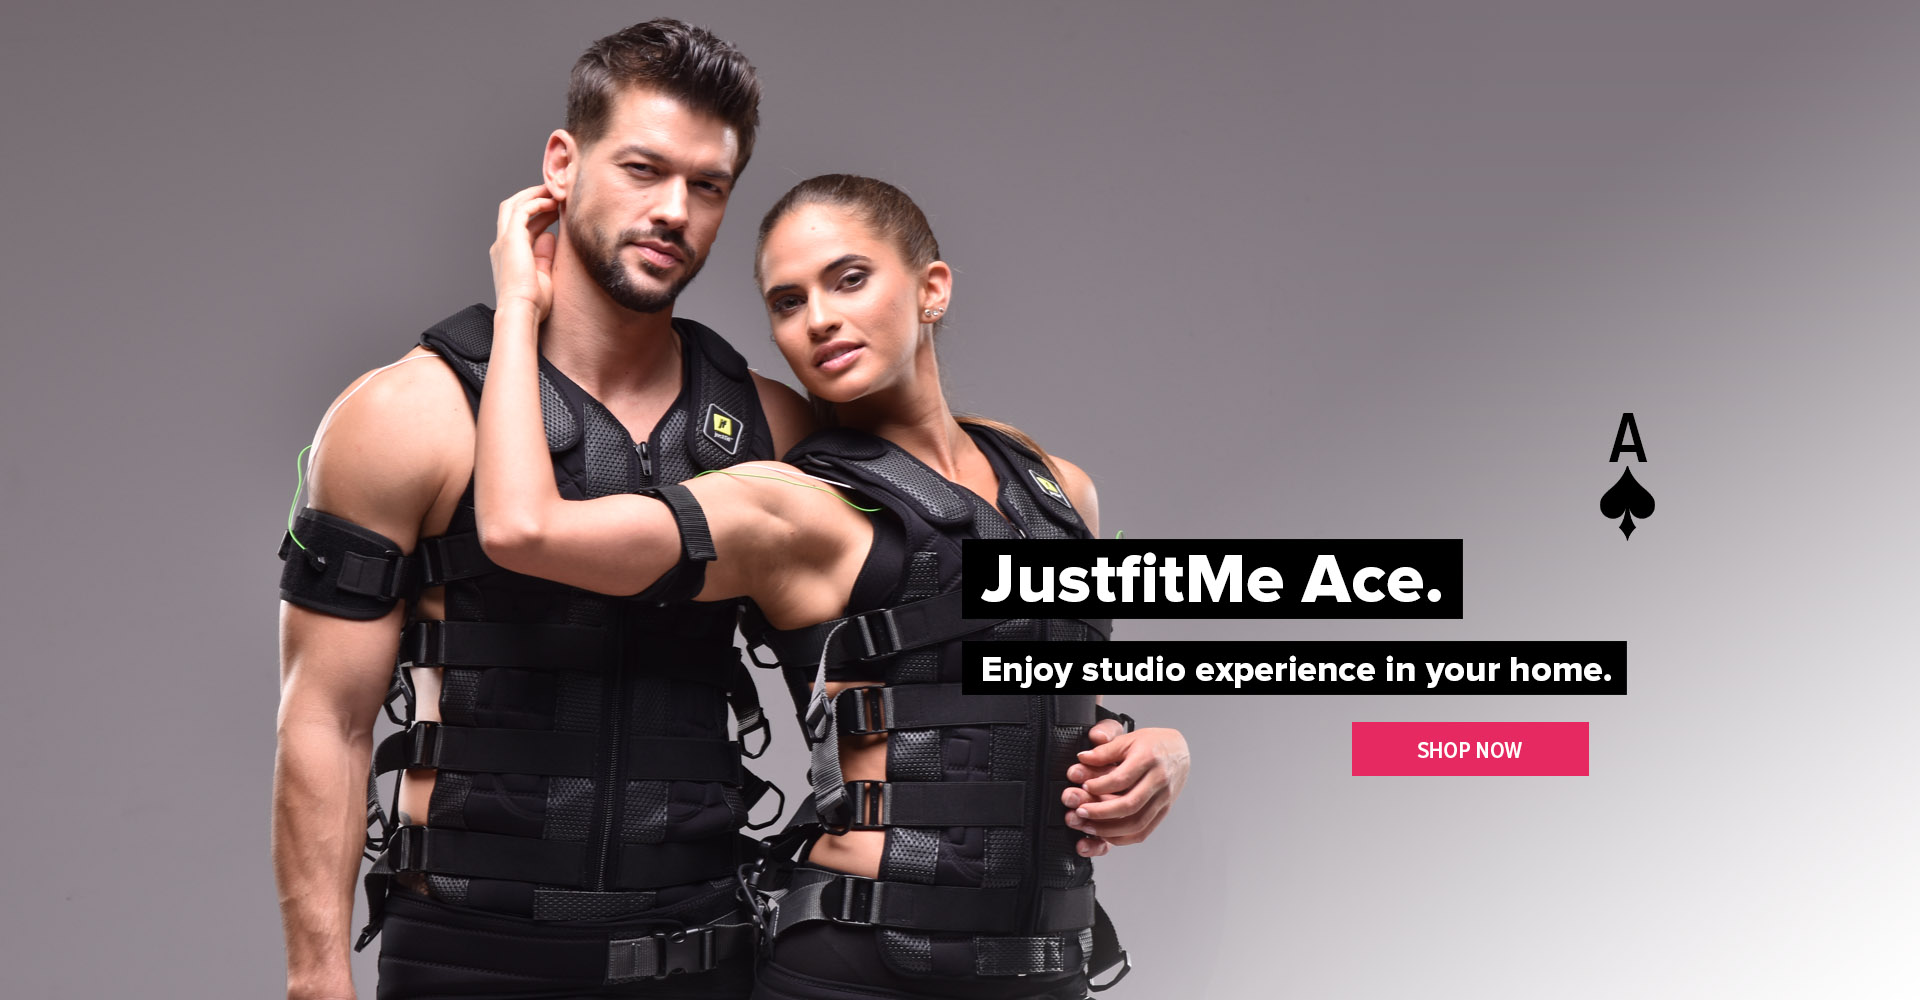 JustfitMe Ace